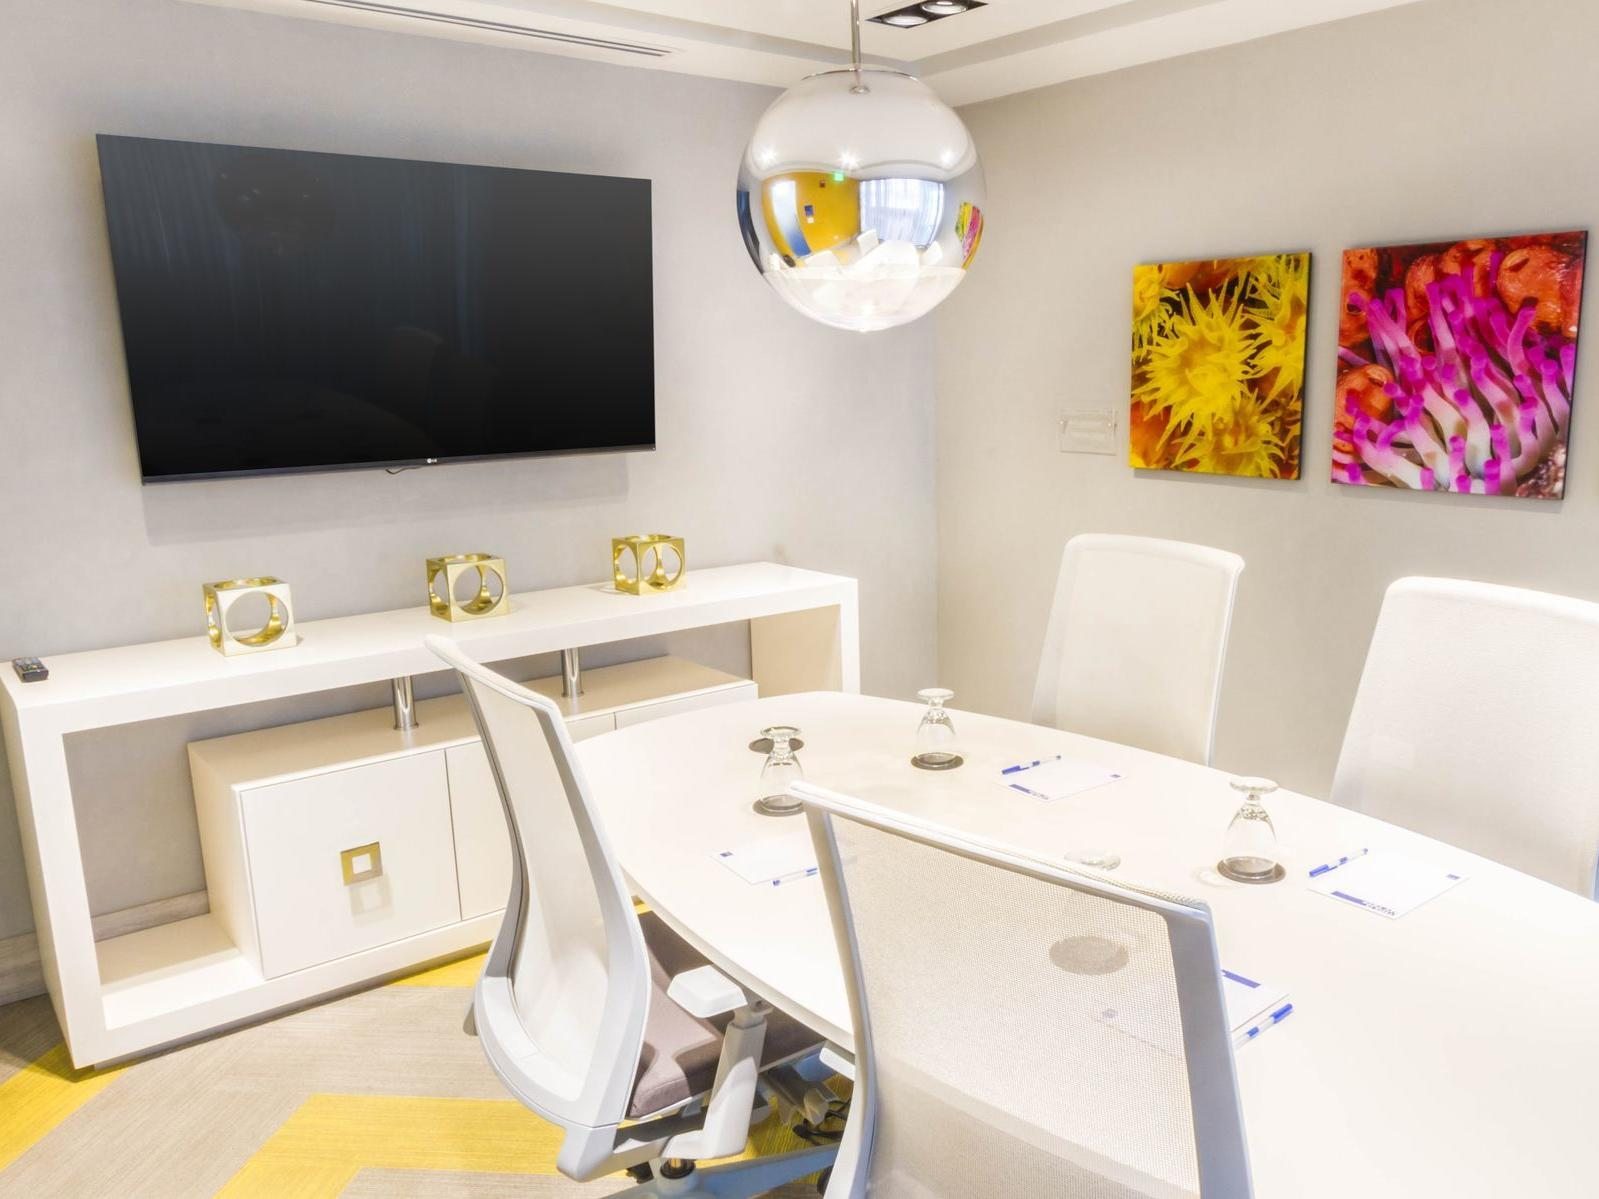 meeting room with conference table, chairs and television